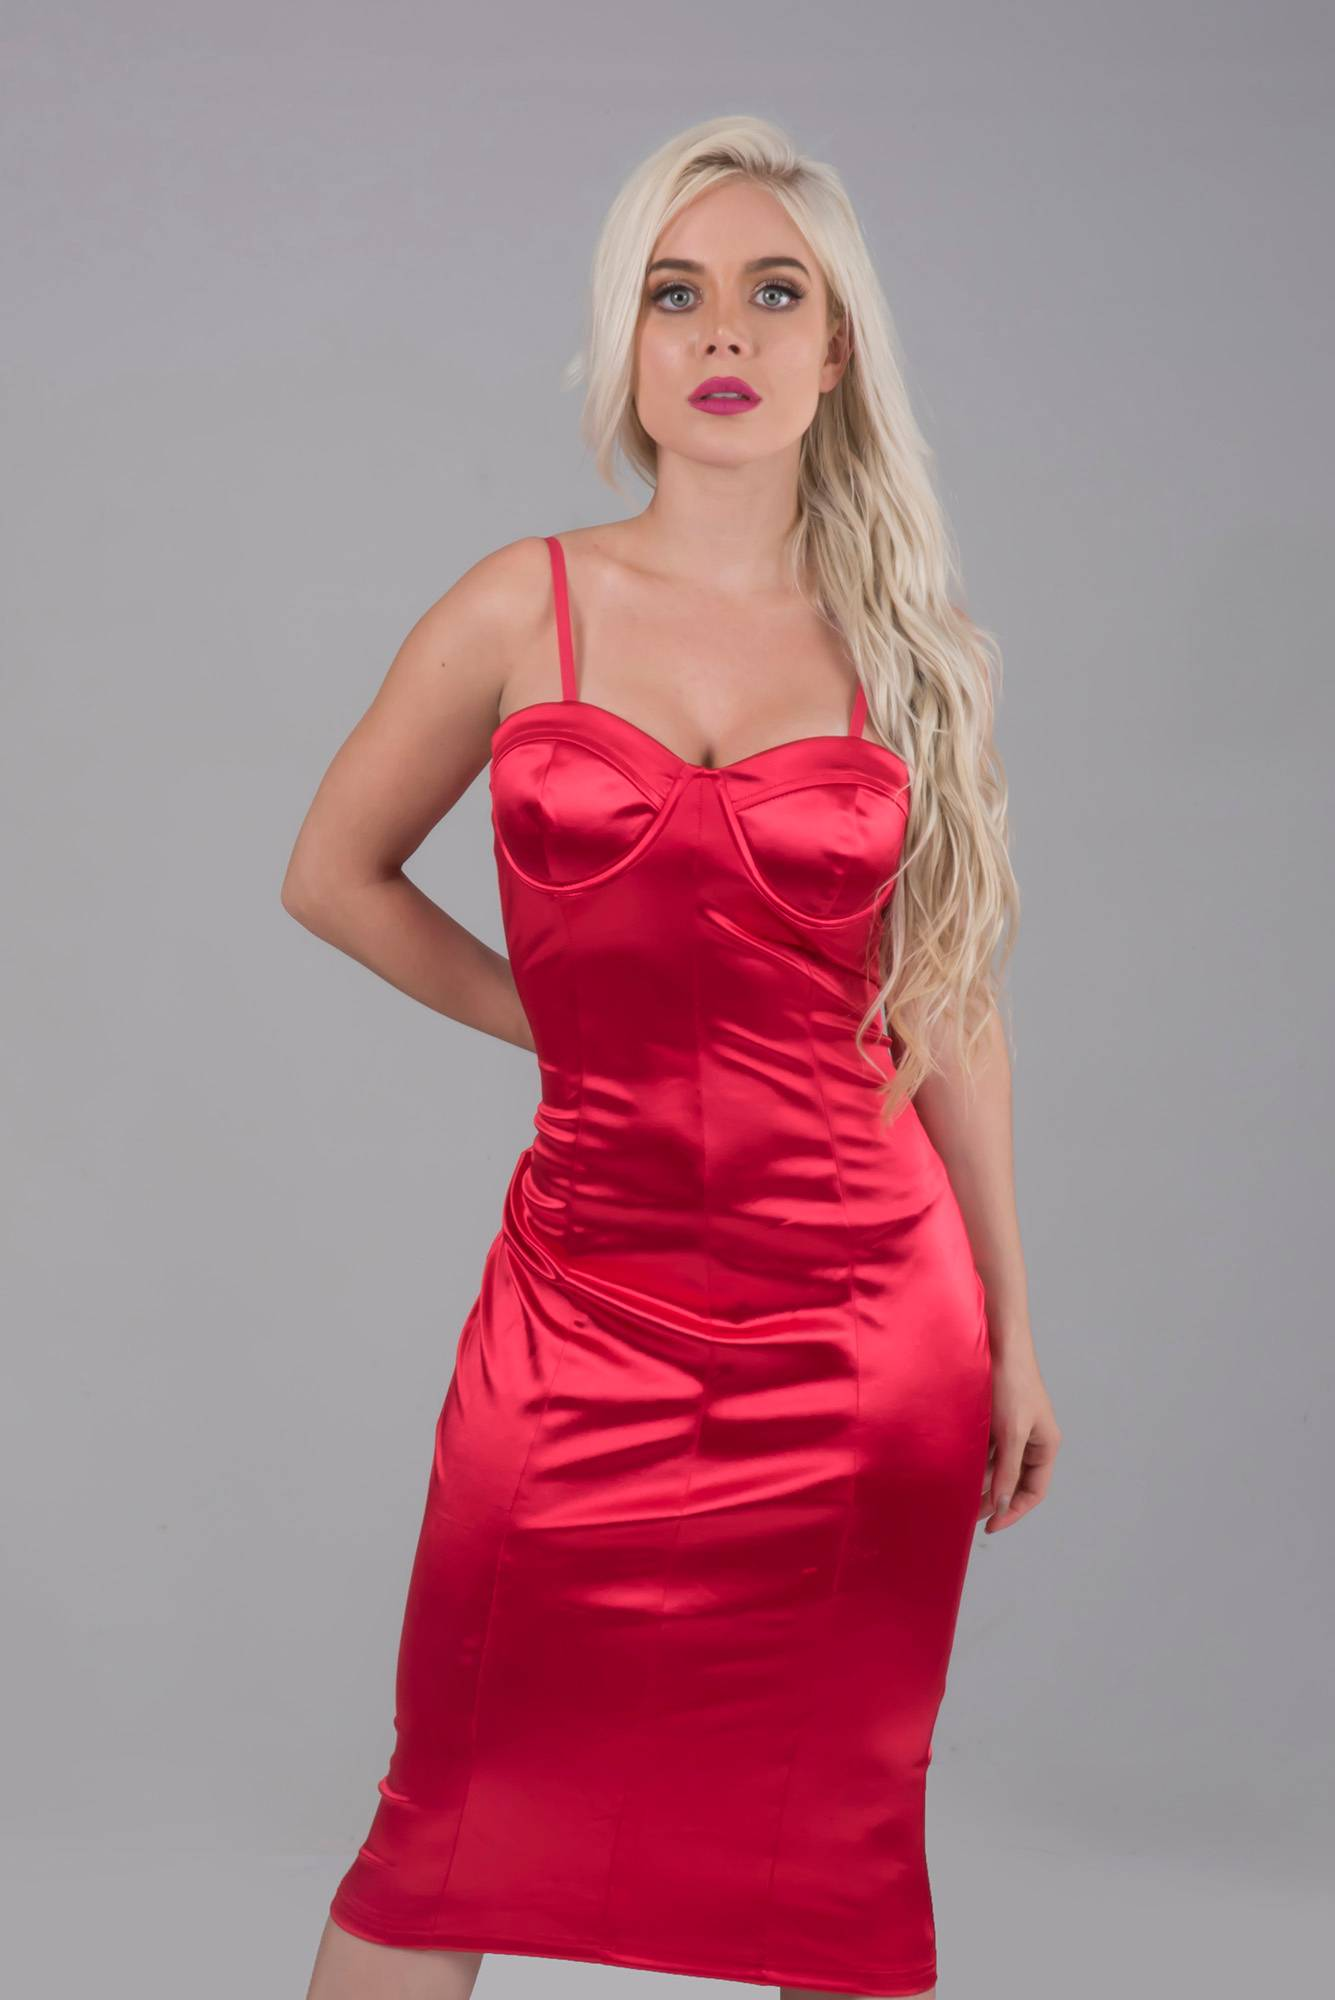 Metallic-Satin-Dress-01-Urhokas-Dresses-C